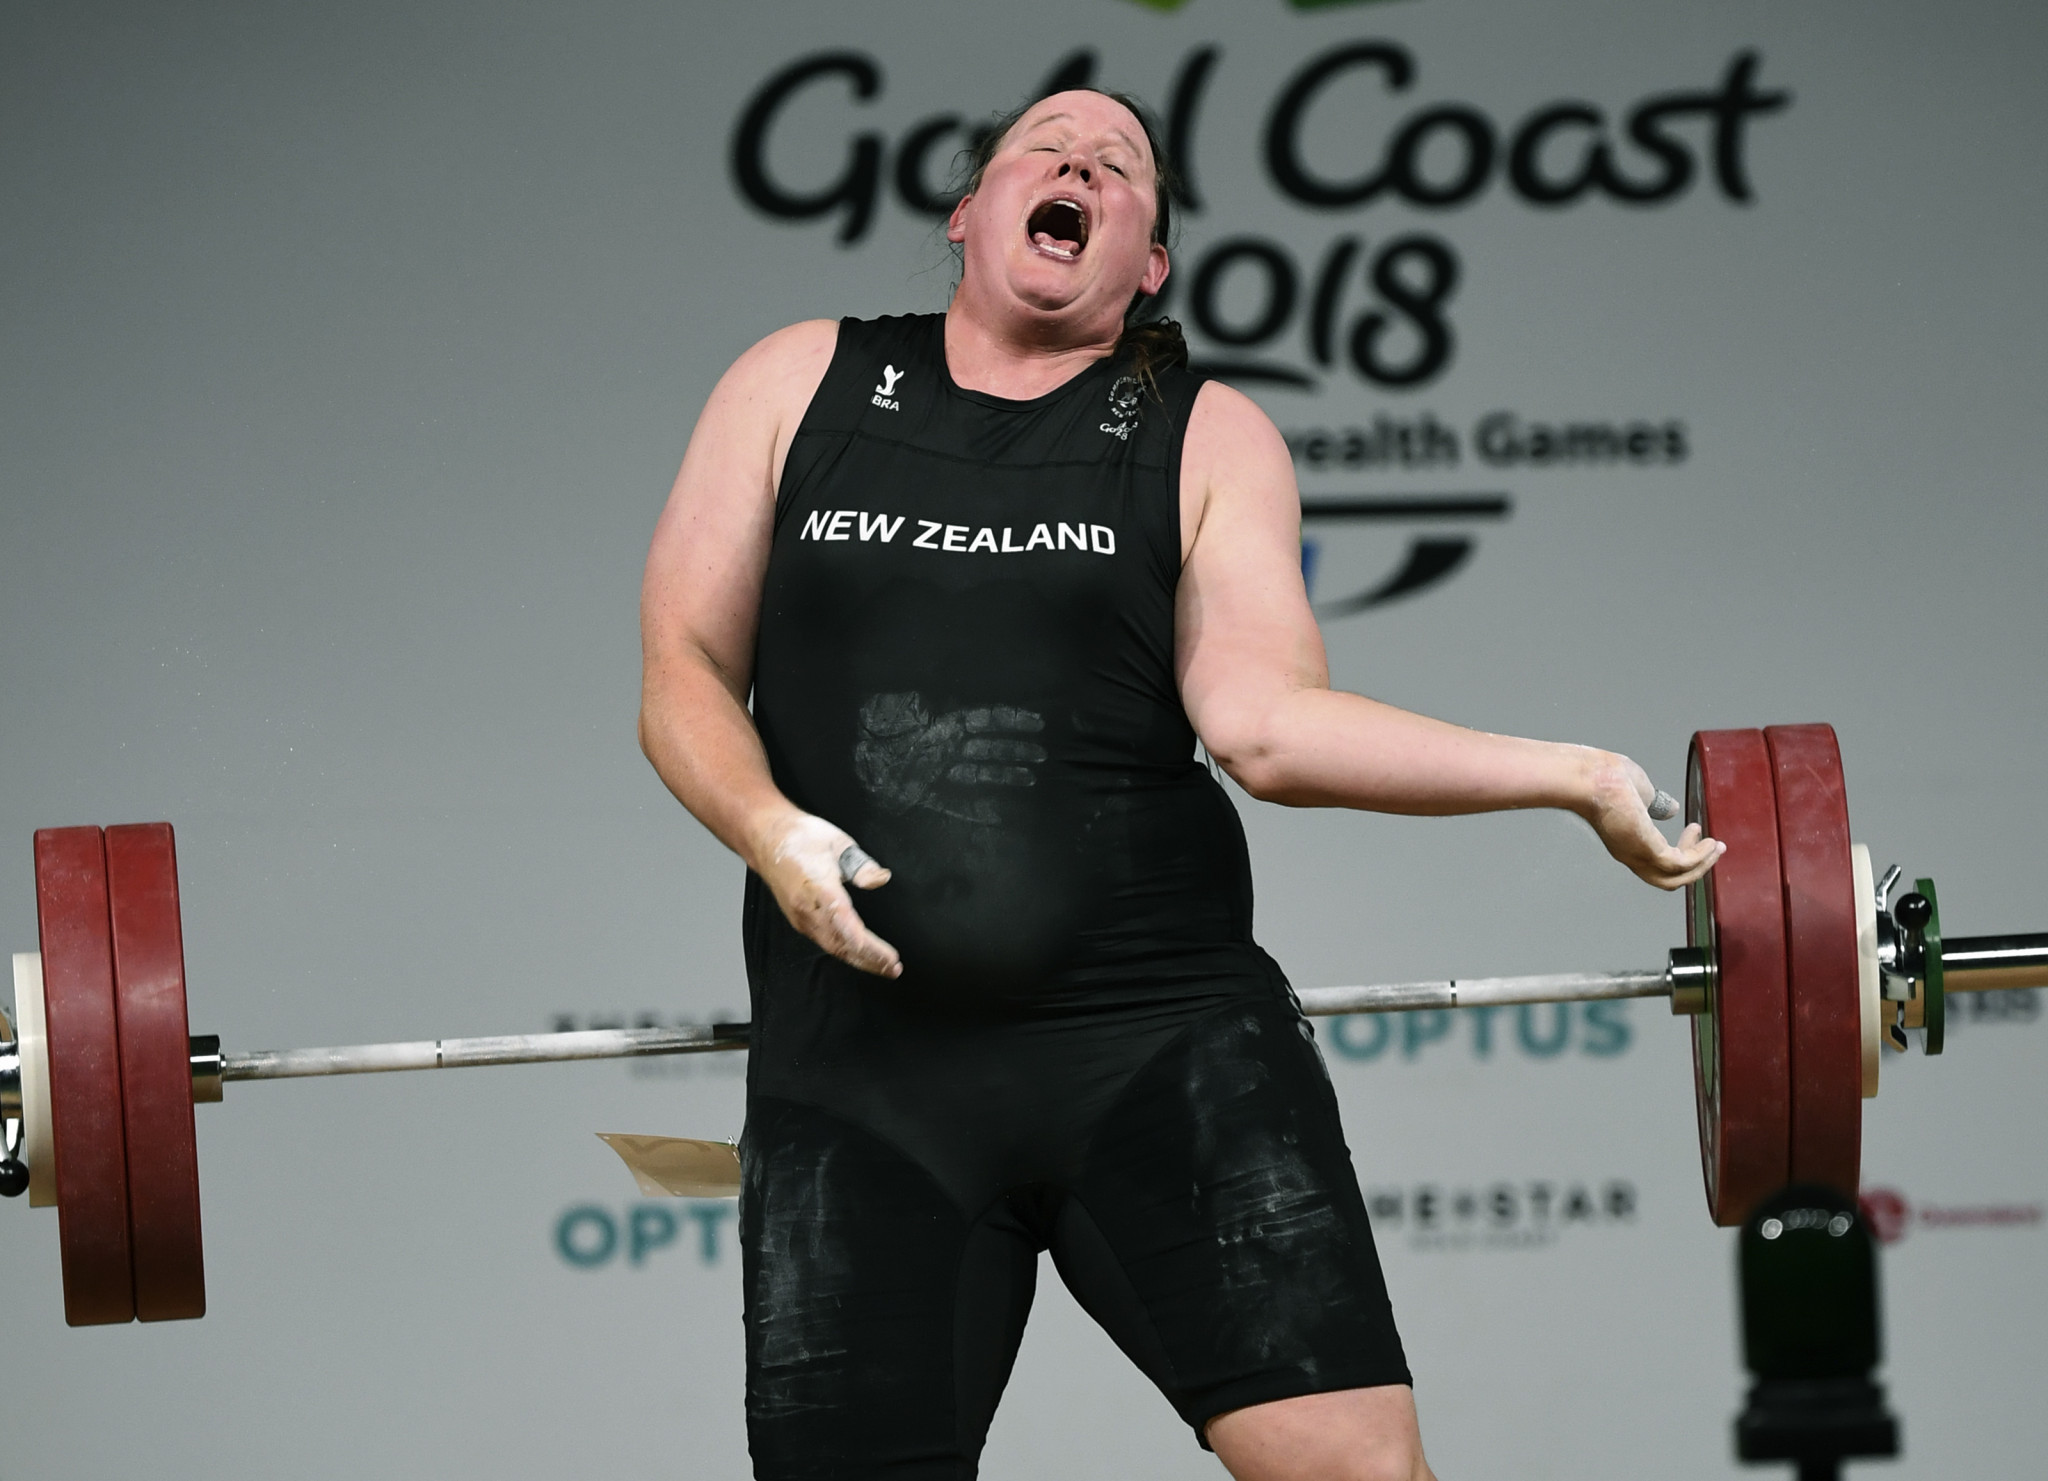 New Zealand's Laurel Hubbard was attempting to break the Commonwealth Games record in the over-90kg category when she suffered the horrific injury at Gold Coast 2018 ©Getty Images